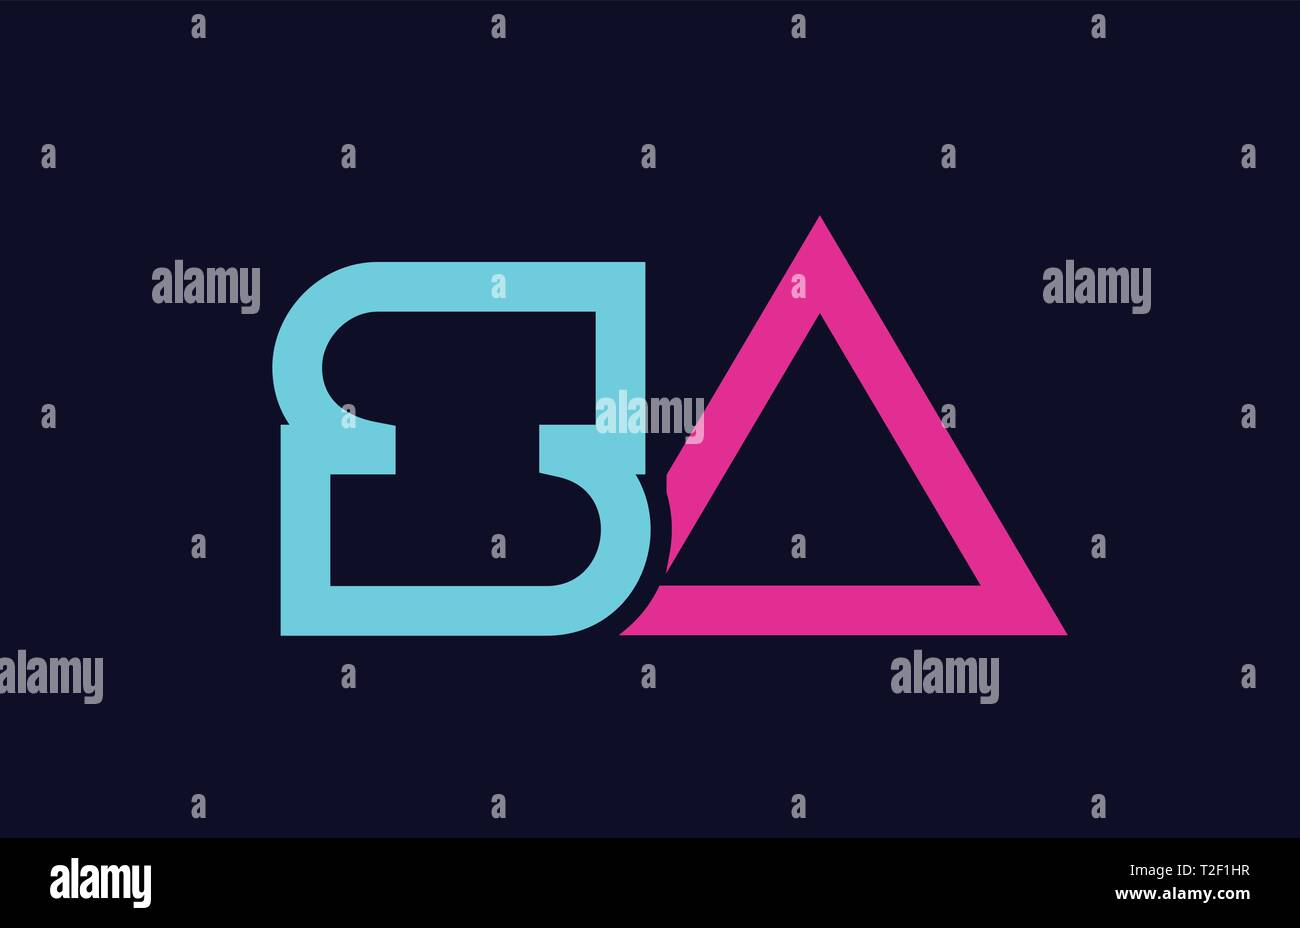 SA S A blue pink colorful alphabet alphabet letter logo combination design suitable for a company or business - Stock Vector